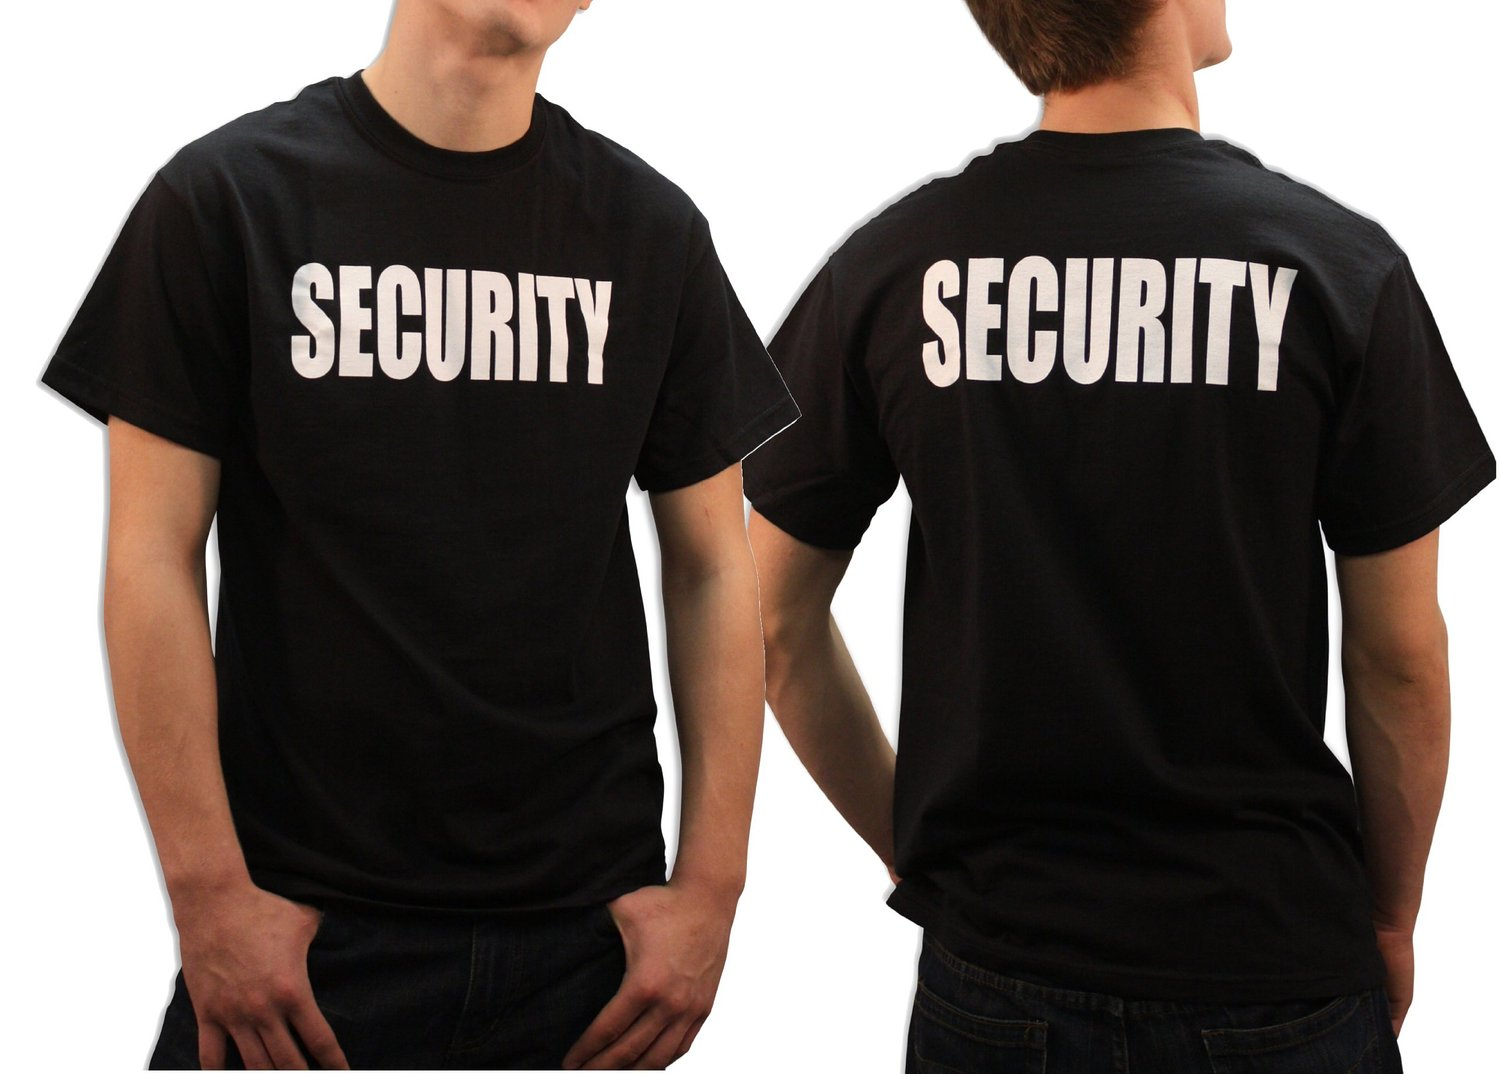 Black t shirt front and back - Official Security Men T Shirt Print On Front Back Cotton Black O Neck Short Sleeve T Shirt Homme 2017 Hip Hop Top Clothing Mma